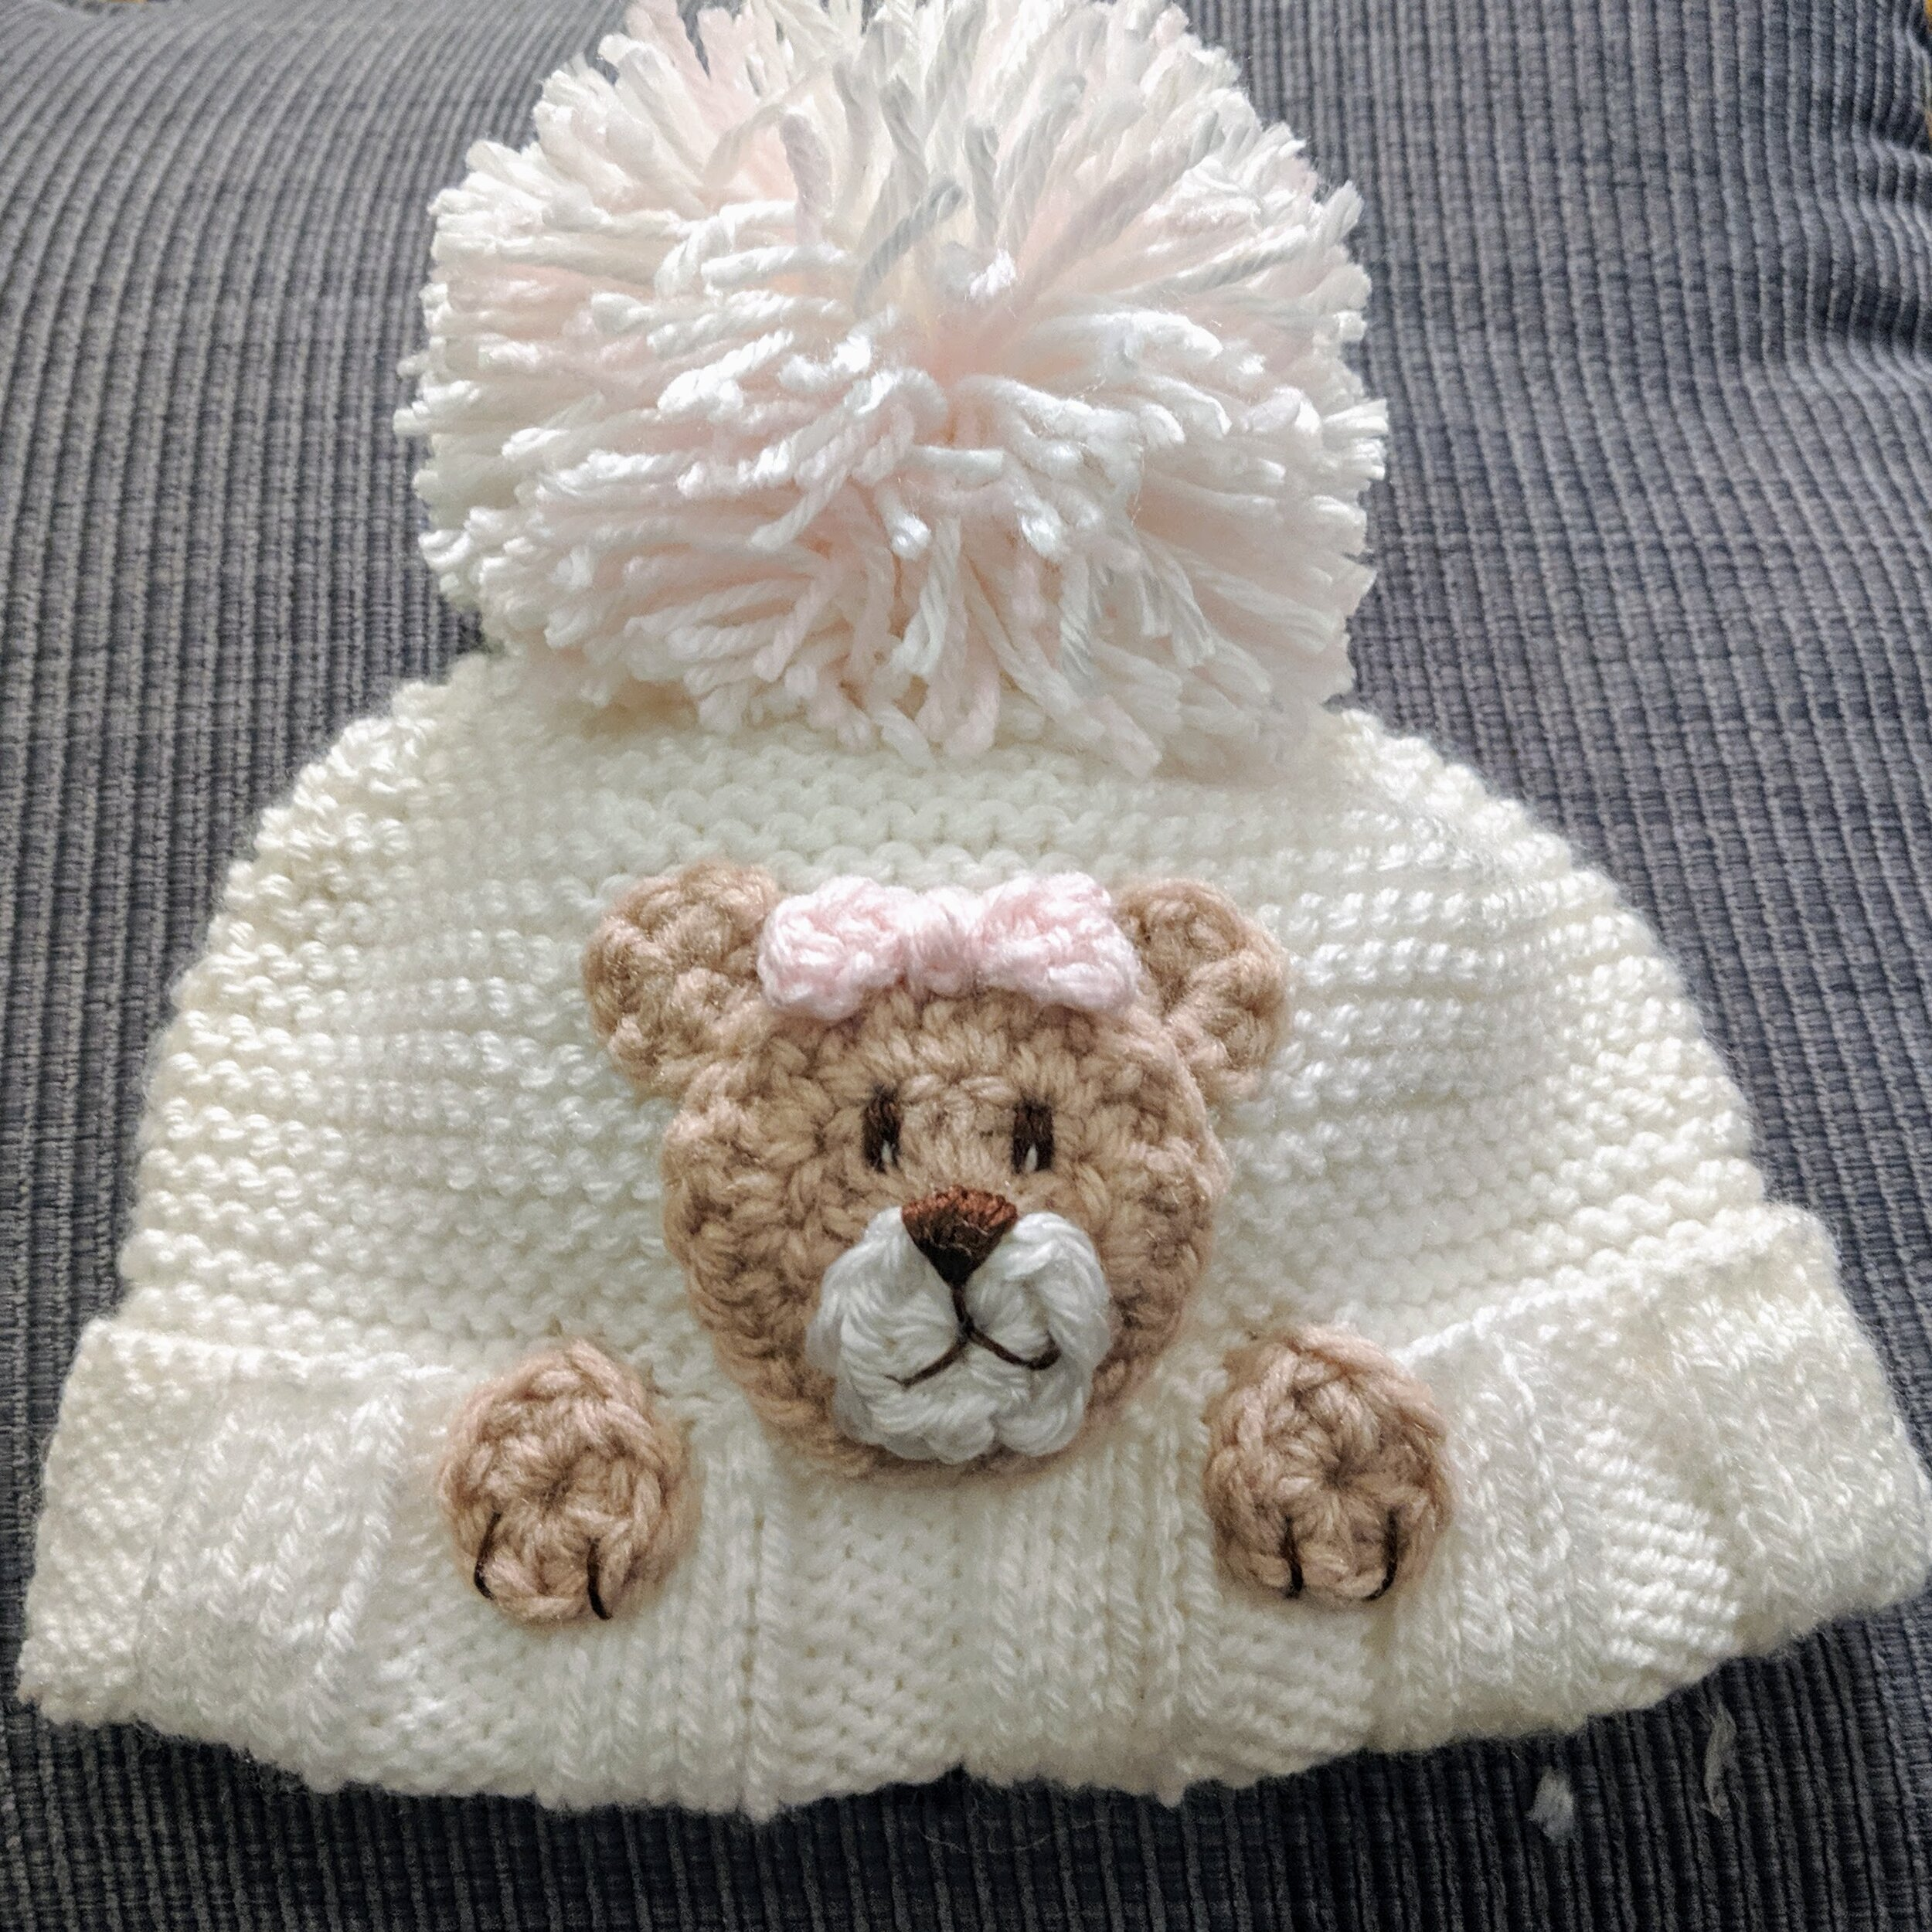 Crochet Teddy Bear Blanket - Repeat Crafter Me | 1000x1000